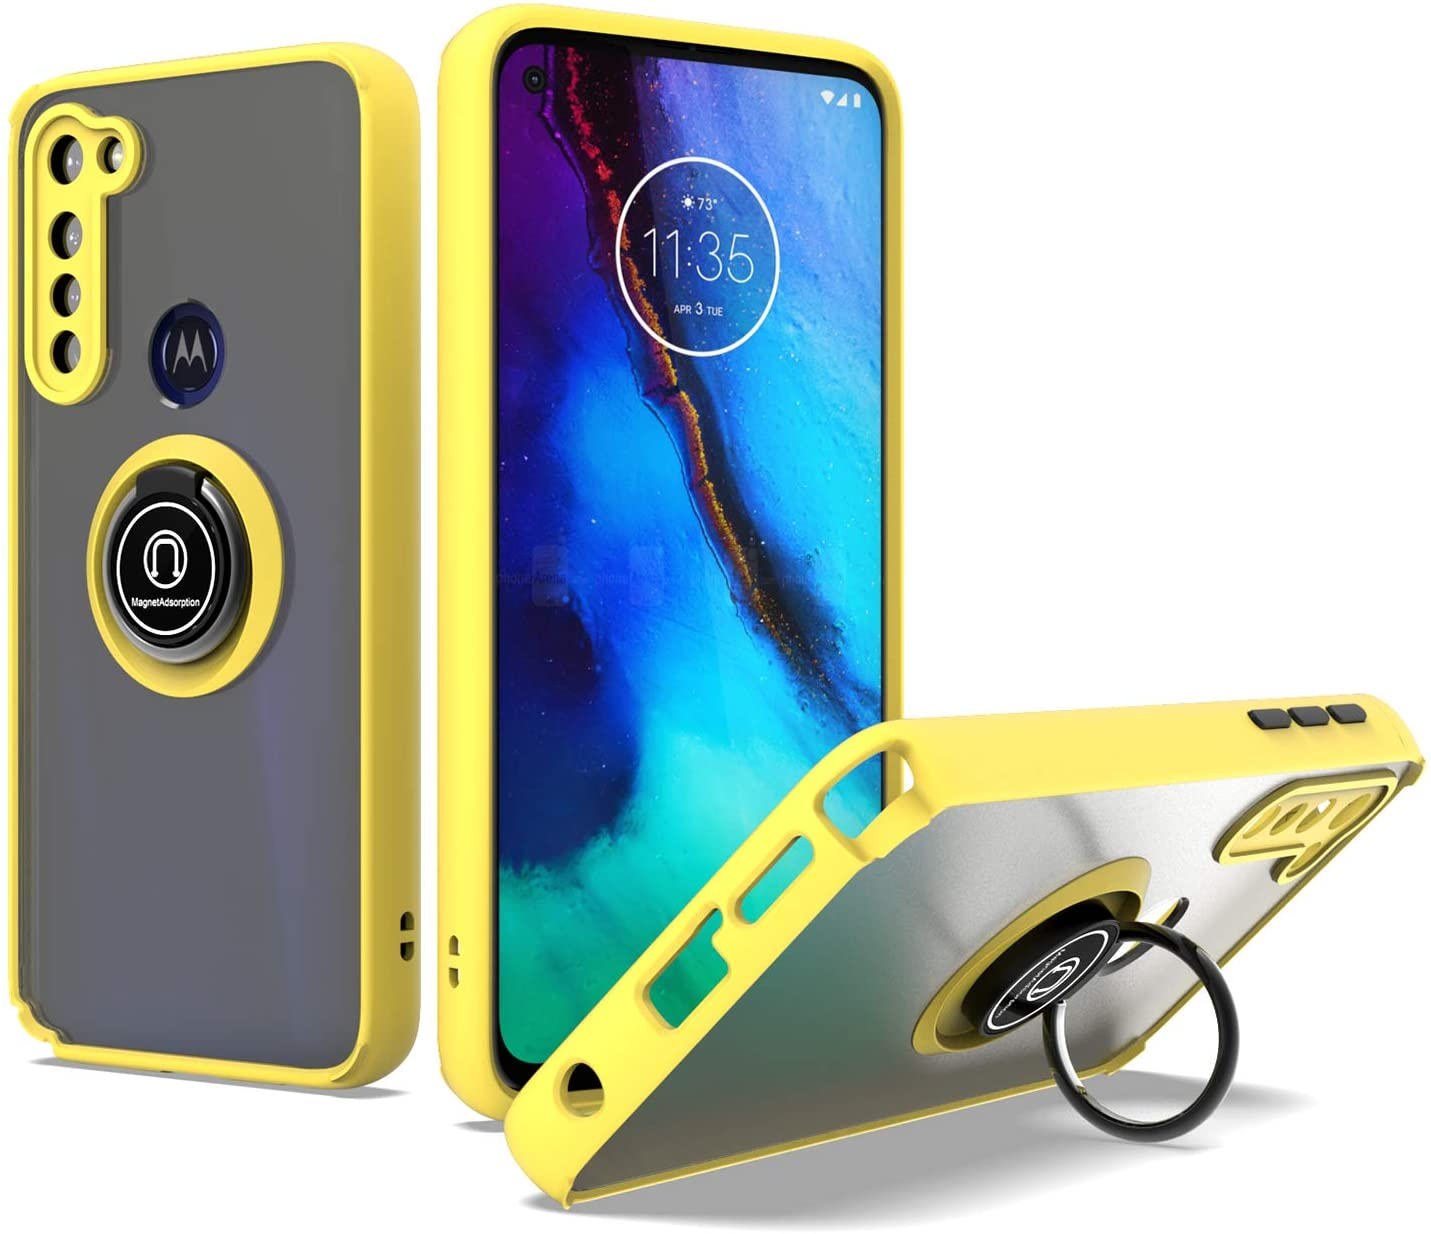 UNC Pro Cell Phone Case for Motorola Moto G-Stylus, TPU Hybrid Case with 360 Degrees Rotating Ring Kickstand, Shockproof Bumper Case, Yellow